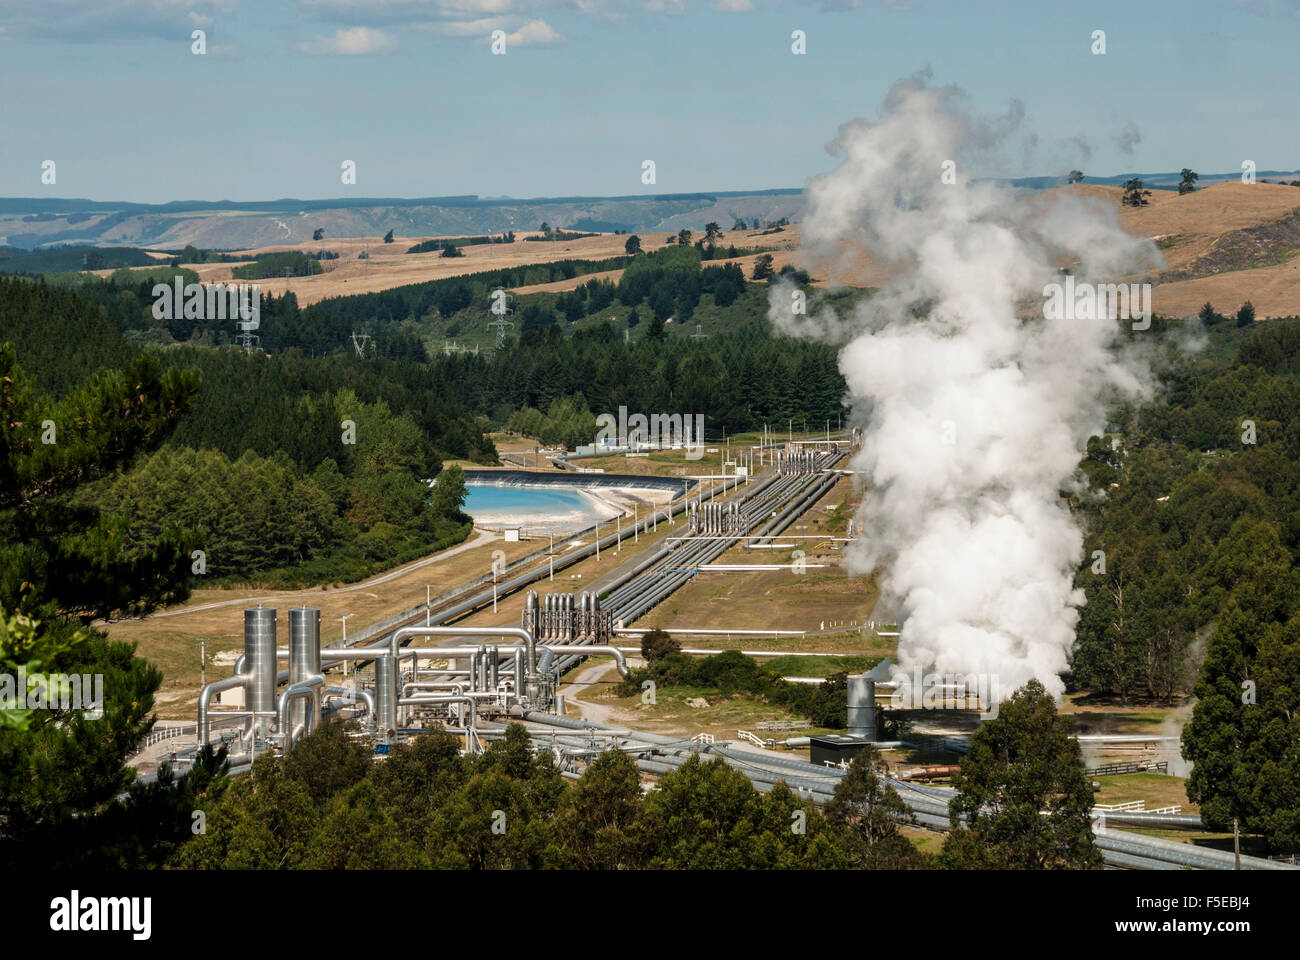 Wairakei Geothermal Power Station, Taupo, North Island, New Zealand, Pacific - Stock Image